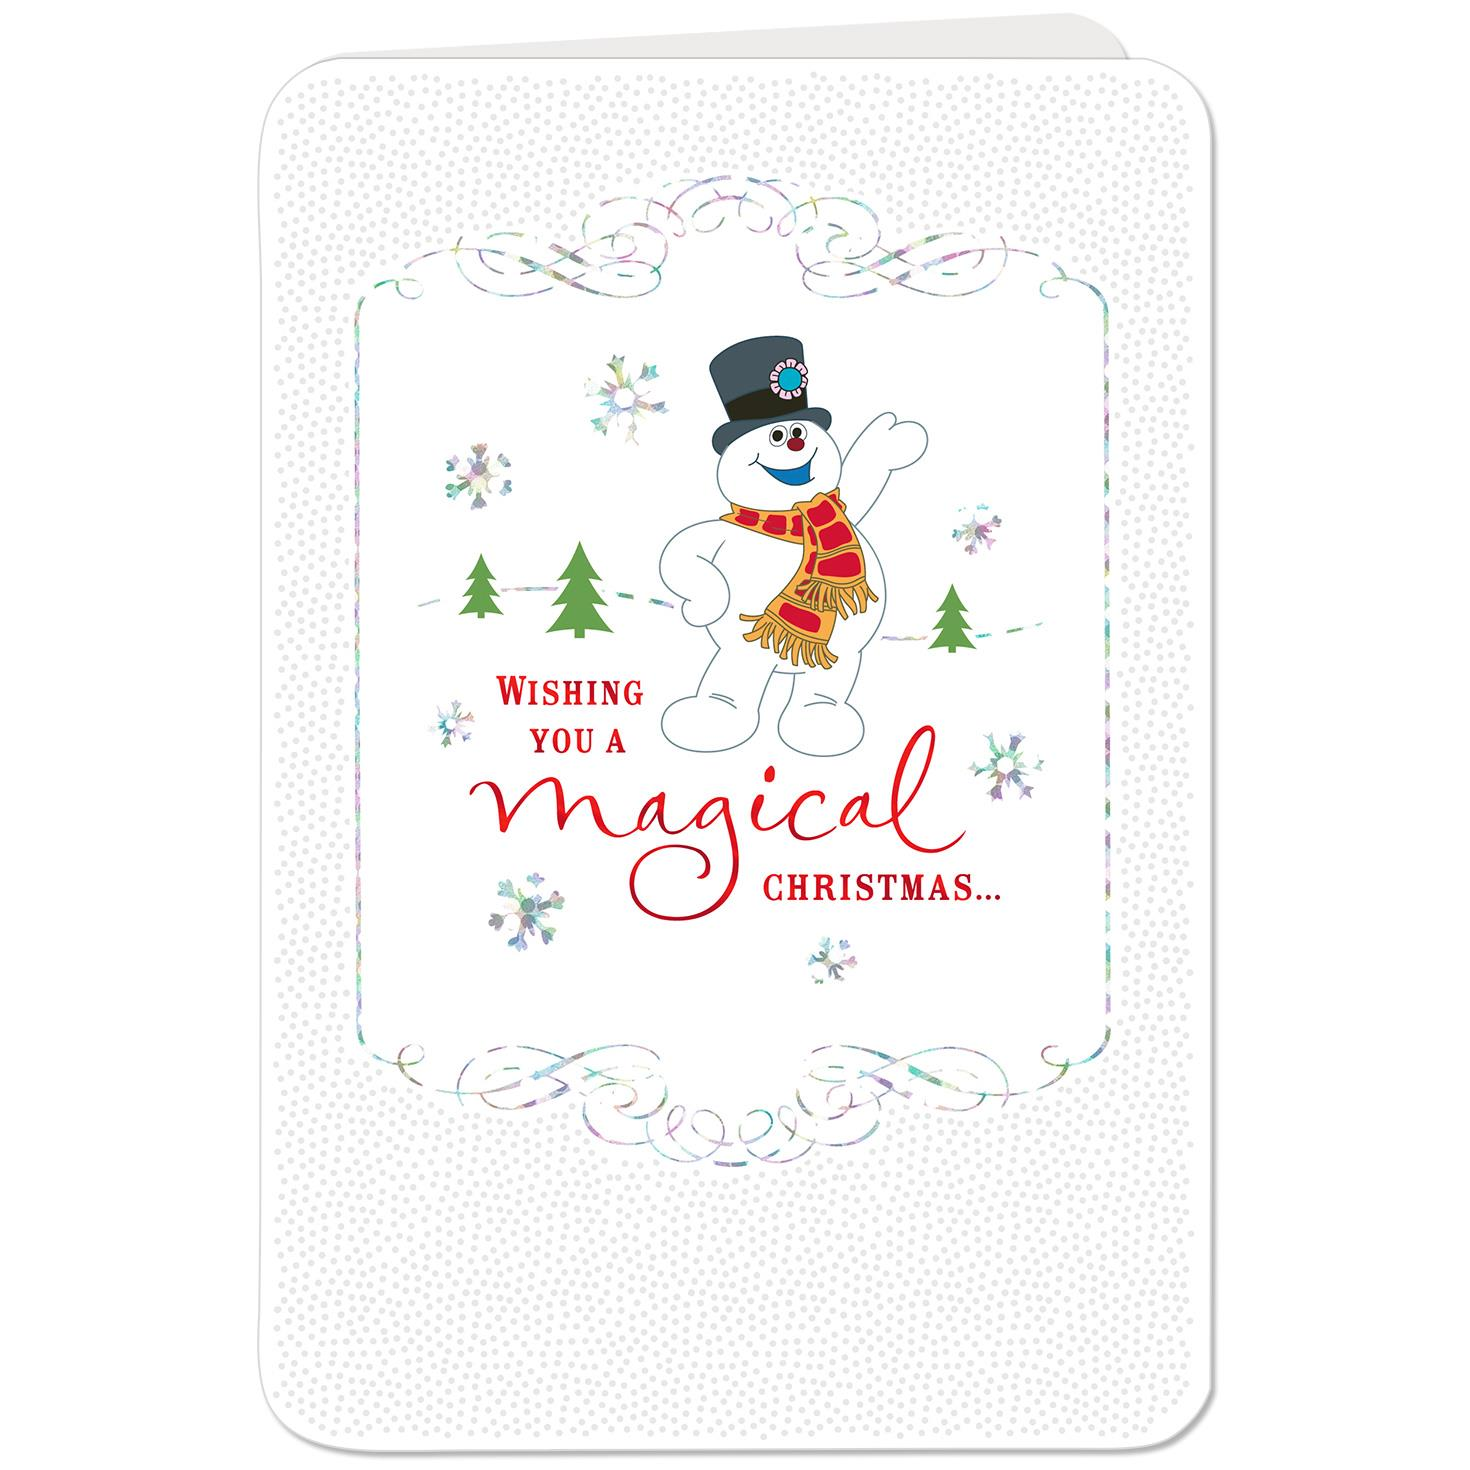 Frosty the Snowman™ Fun That Lasts Christmas Card